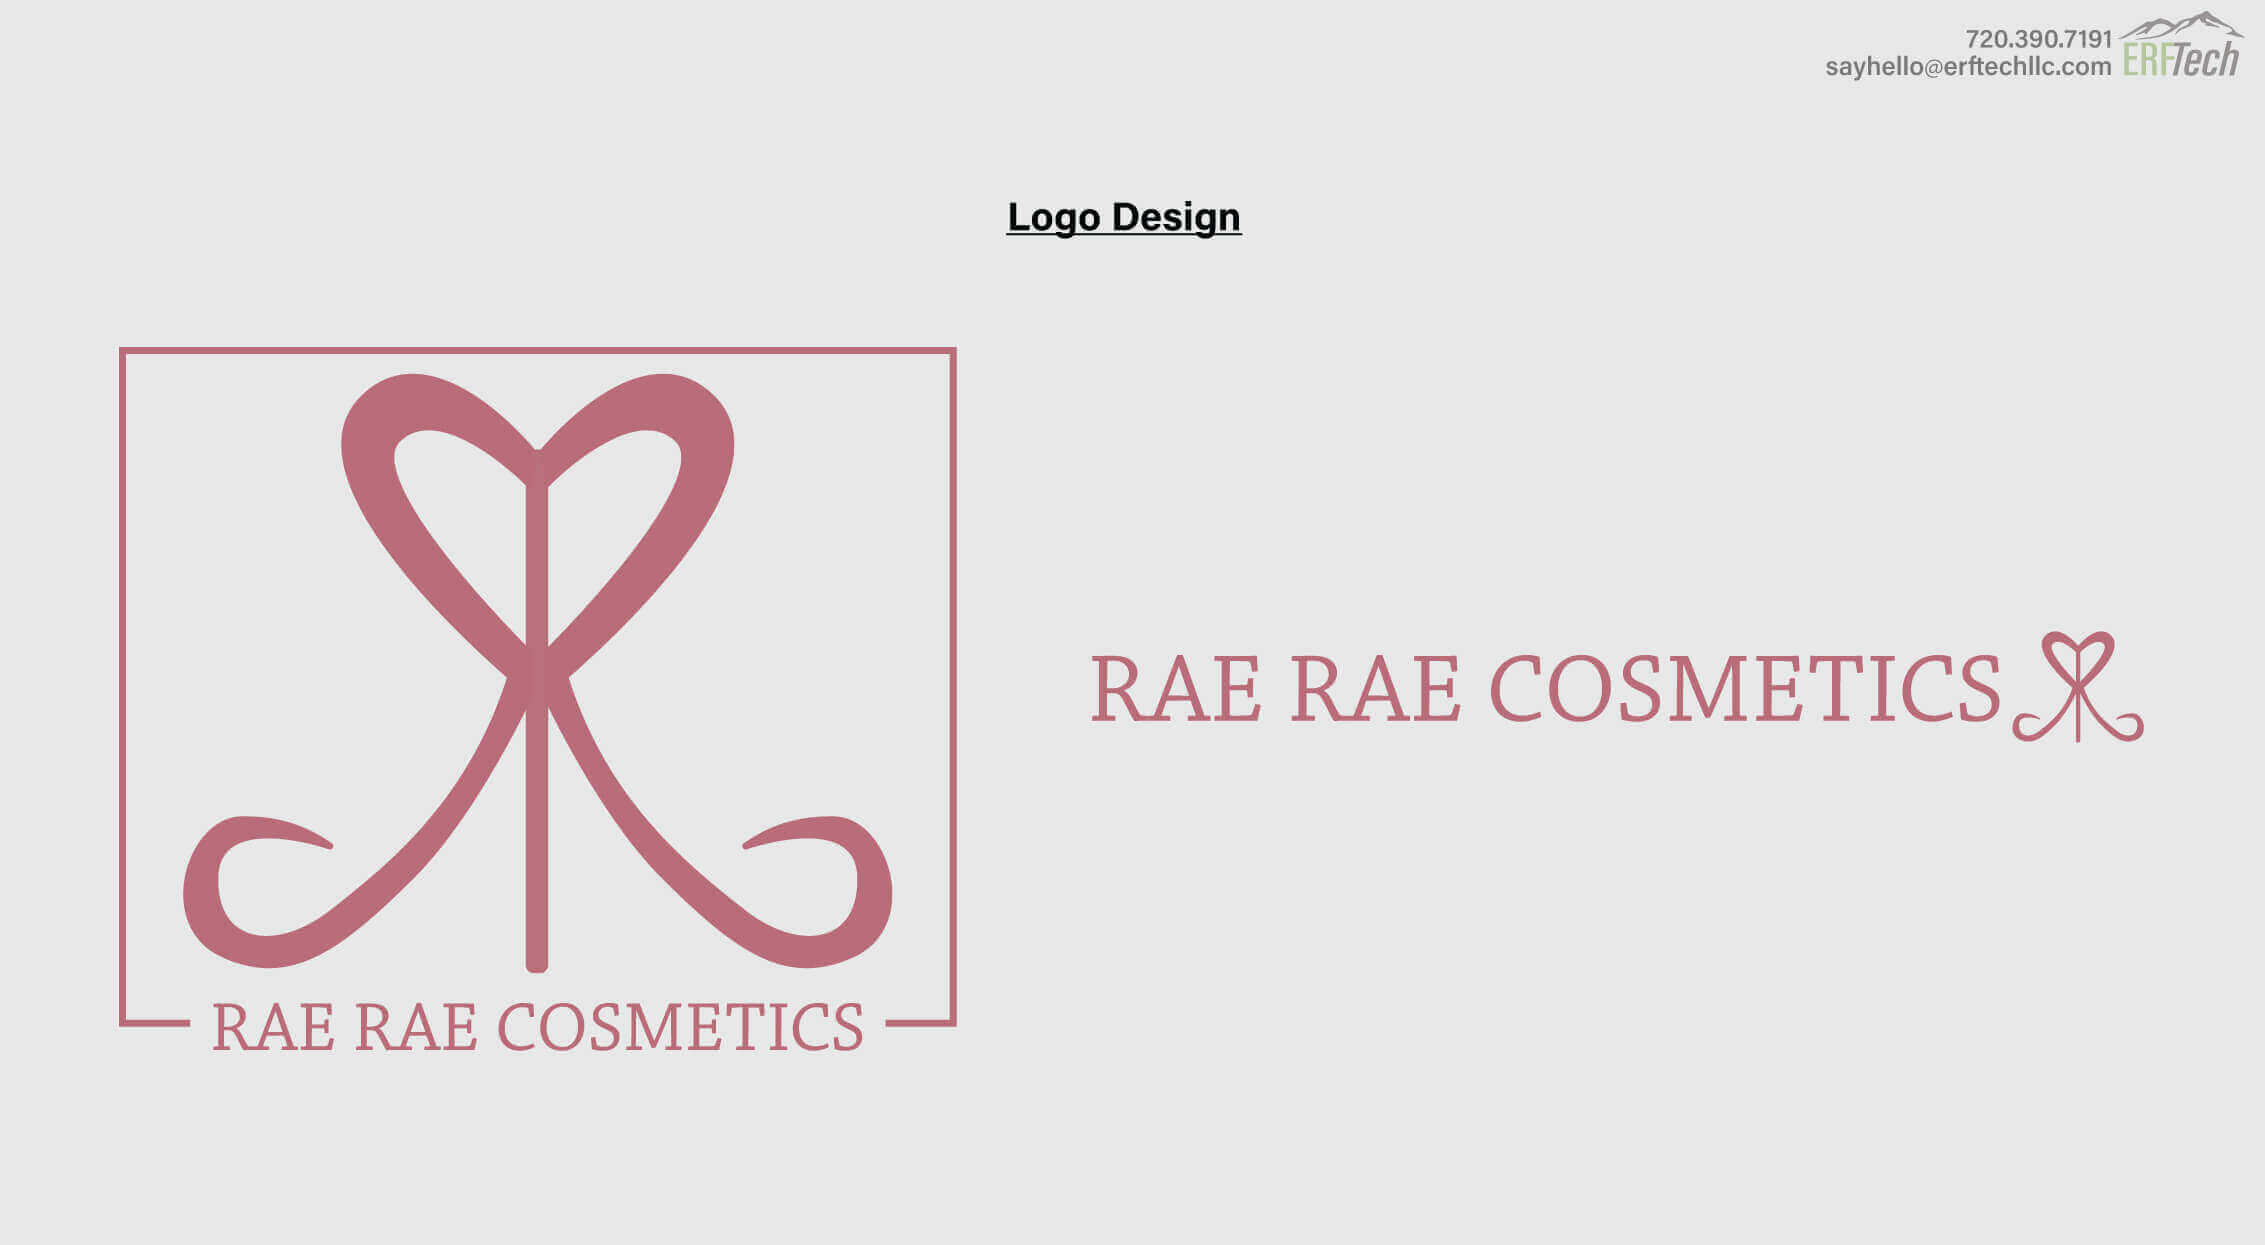 Logo Design for Rae Rae Cosmetics in Denver, CO